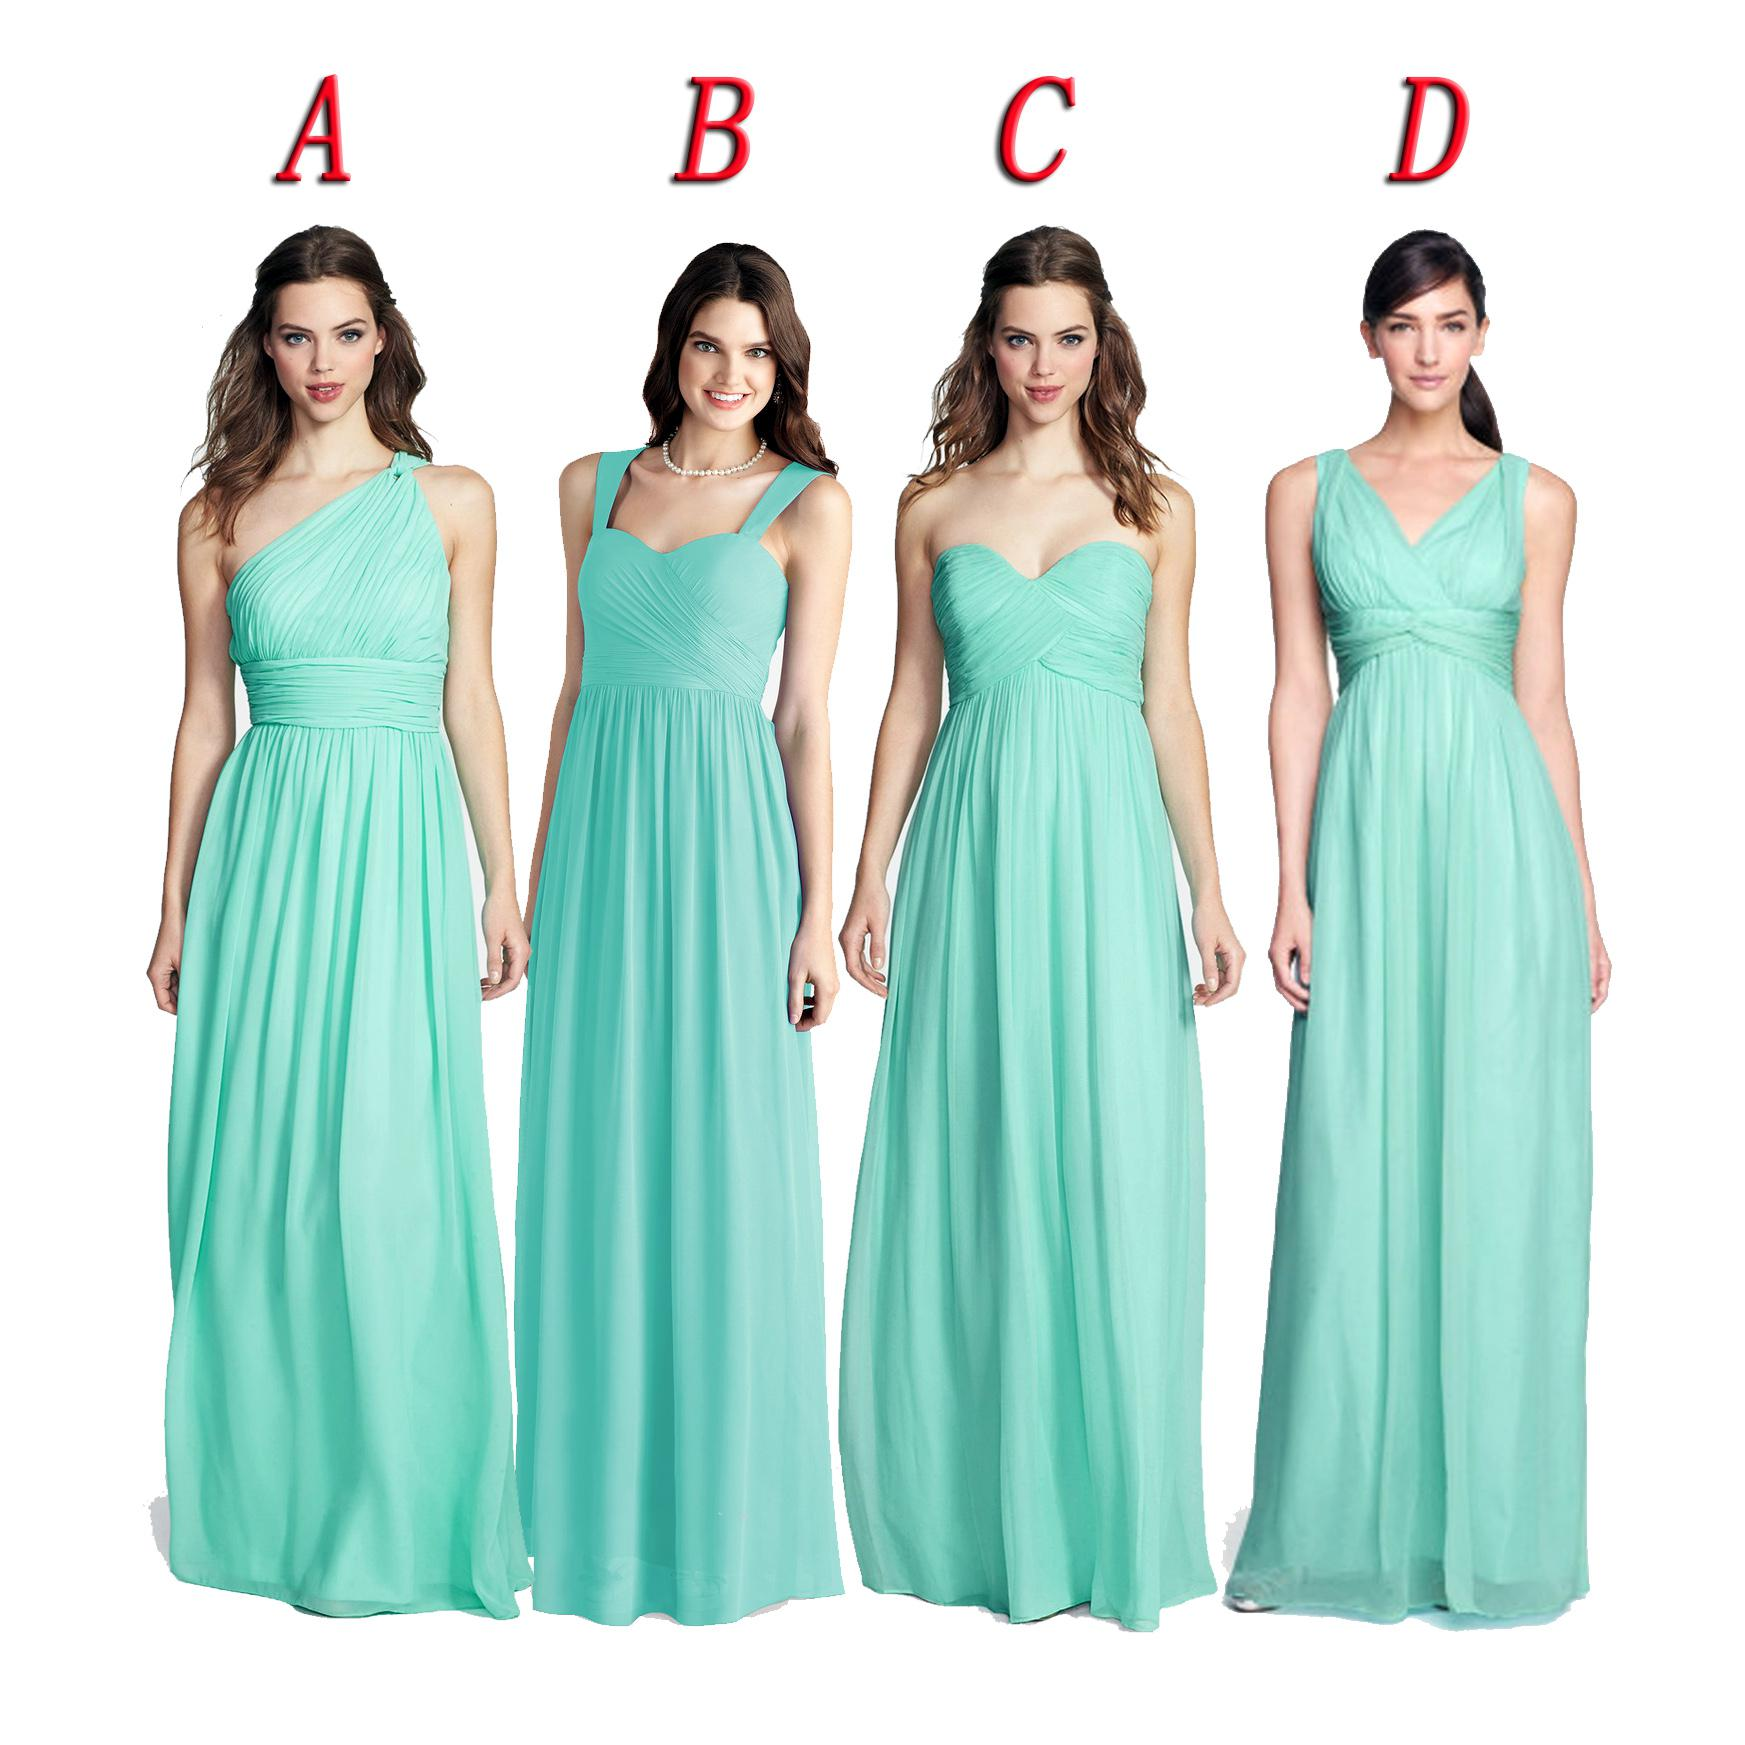 2016 chiffon beach bridesmaid dresses mint green vestidos de 2016 chiffon beach bridesmaid dresses mint green vestidos de fiesta a line long prom dresses wedding party gowns bo6561 evening dress a line bridesmaid ombrellifo Image collections